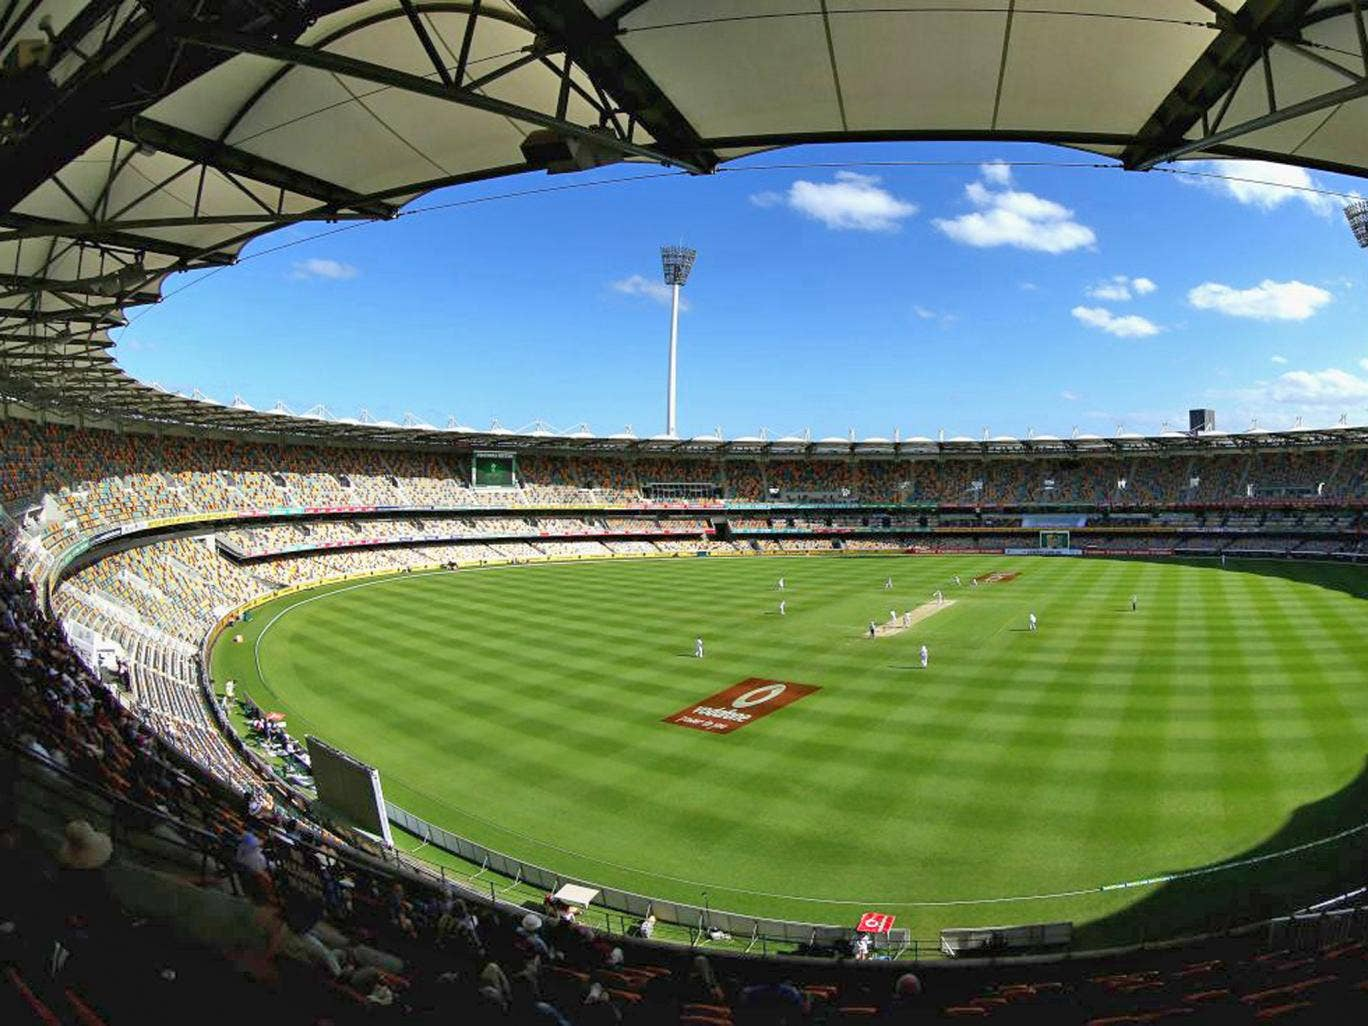 Knocked for six: the Gabba, Brisbane